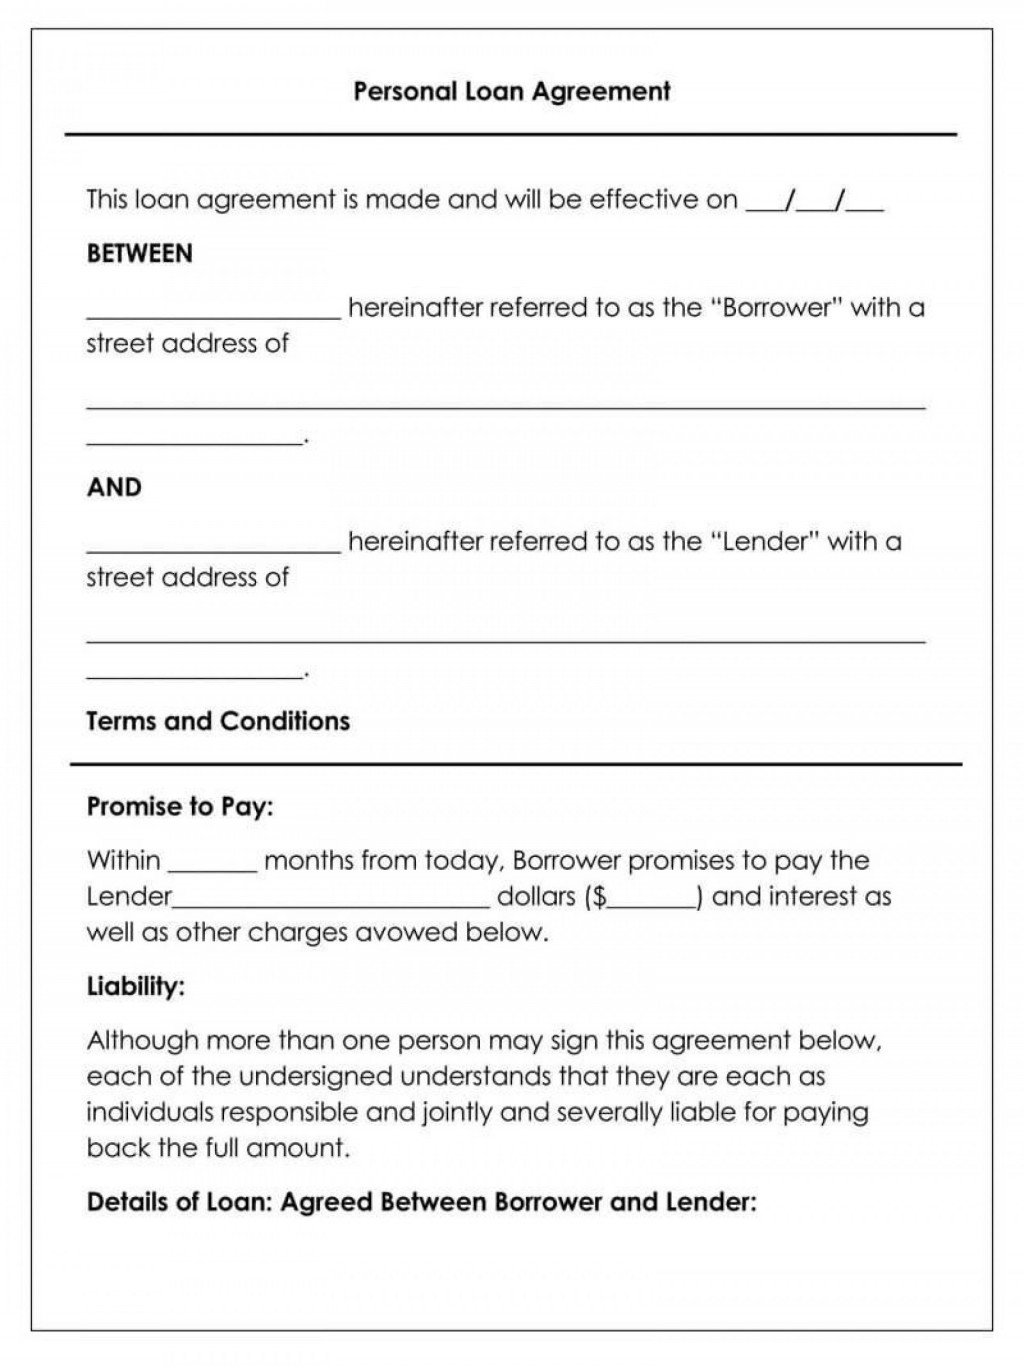 004 Amazing Simple Family Loan Agreement Template Australia Sample Large